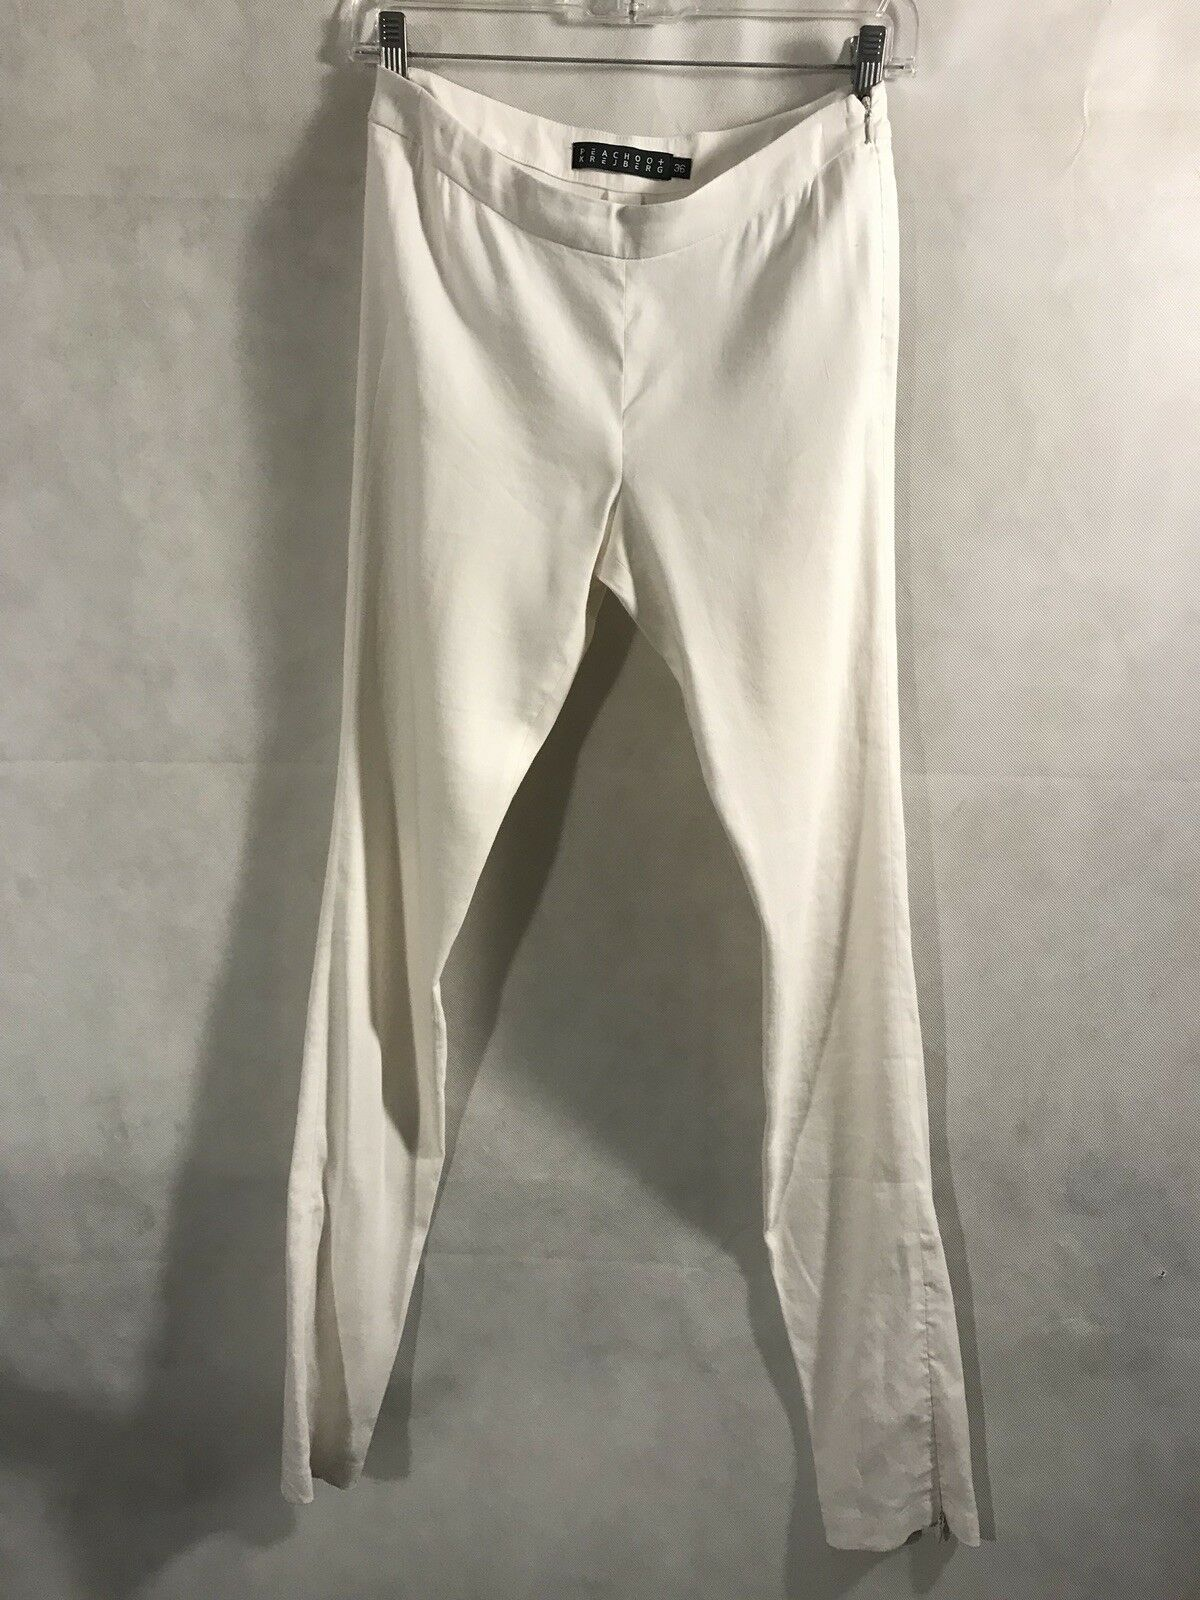 PEACHOO+KREJBERG Essential Ivory White Fitted Pant ,Great Condition,Sz. 36